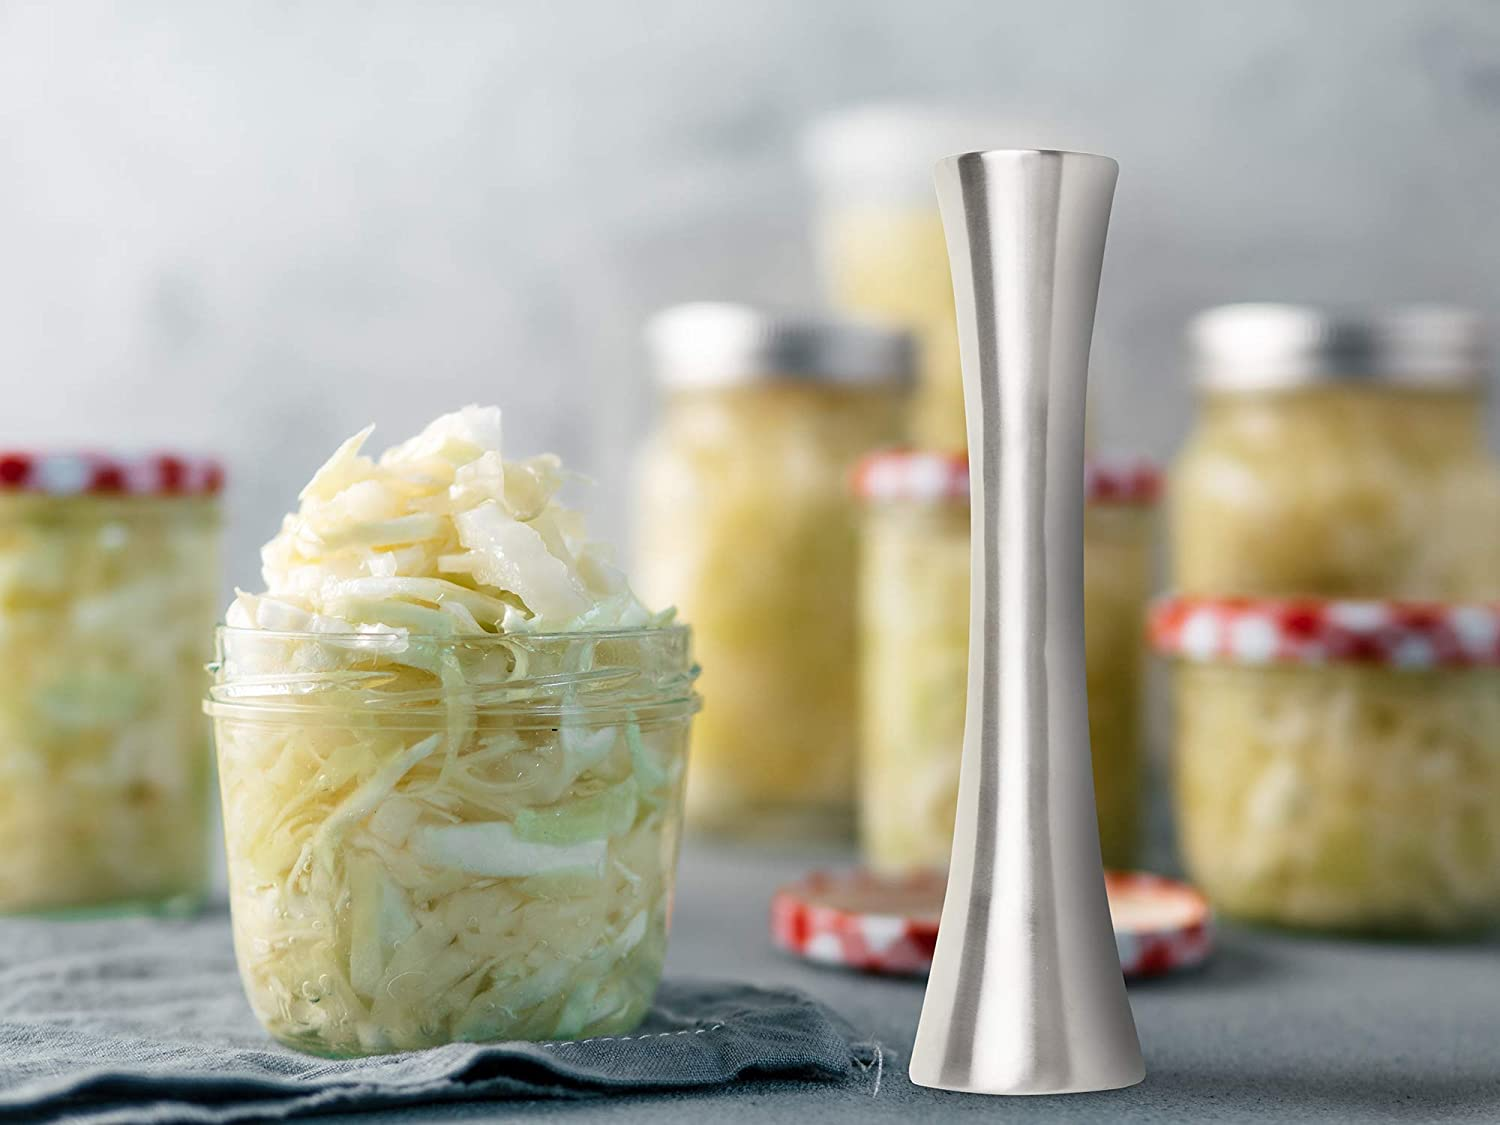 10 Farm to Table 52553 Sauerkraut Pounder Tamper 10 inches Steel